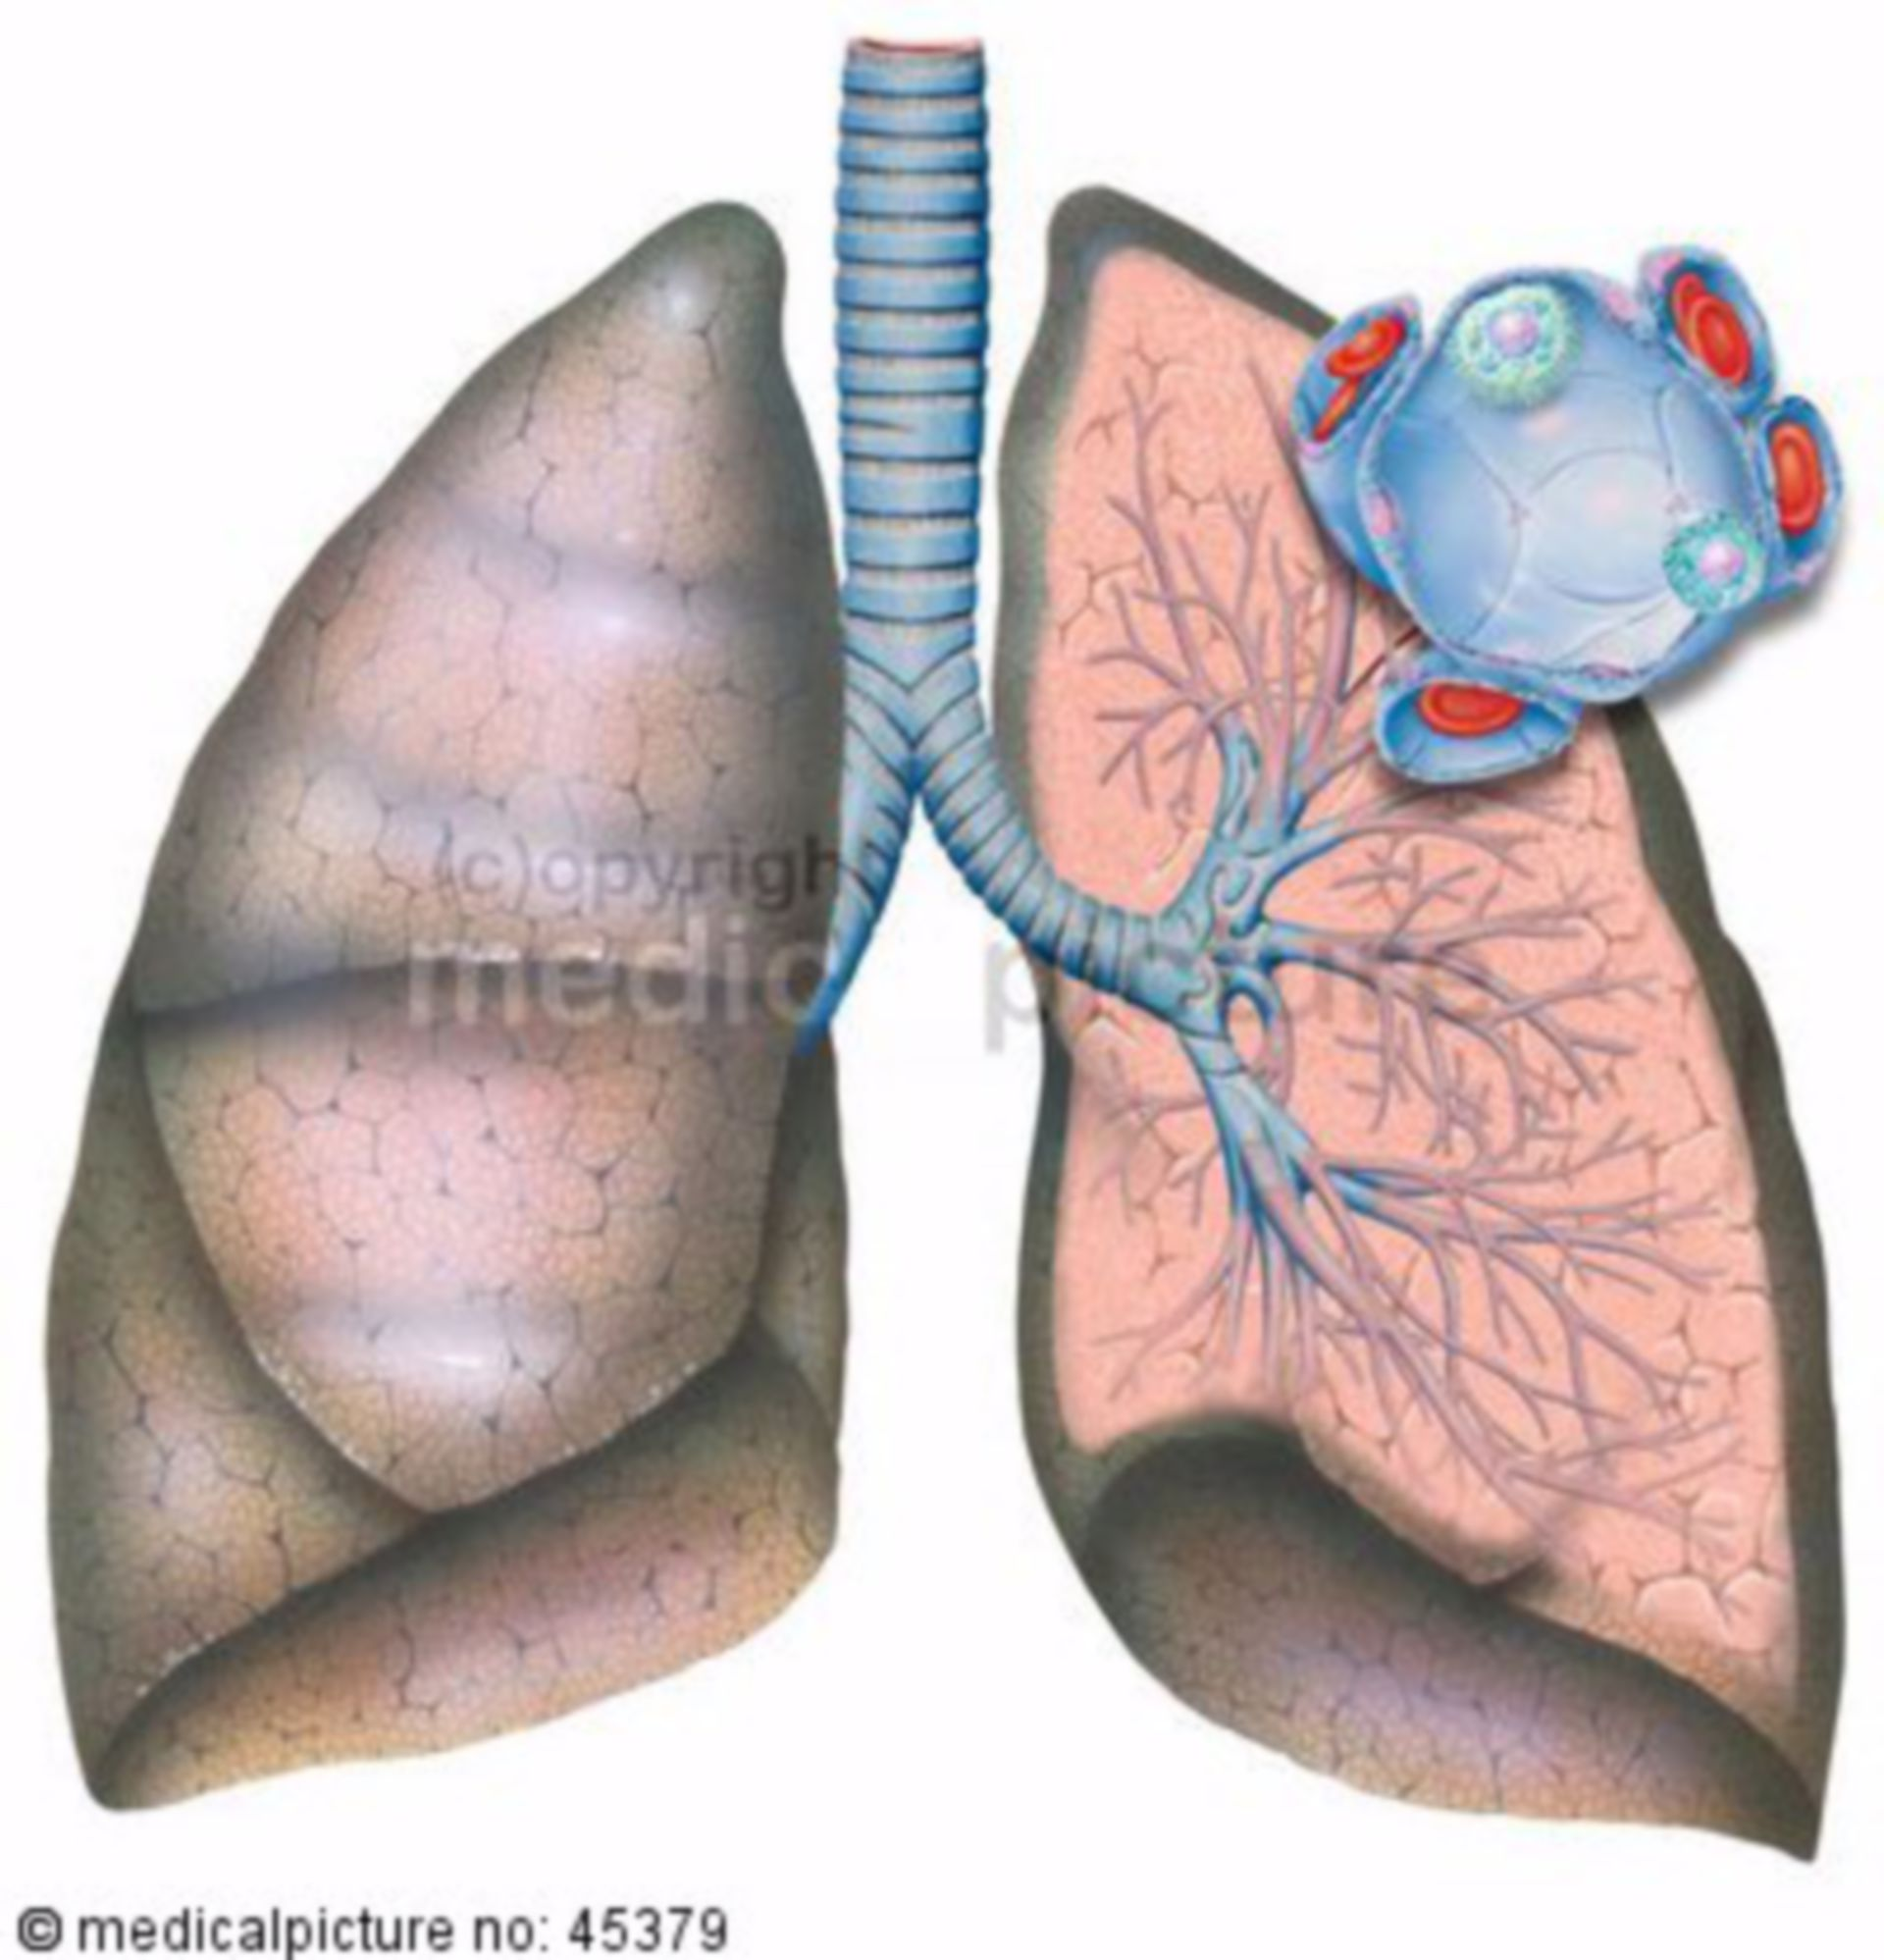 Anatomy of the lung